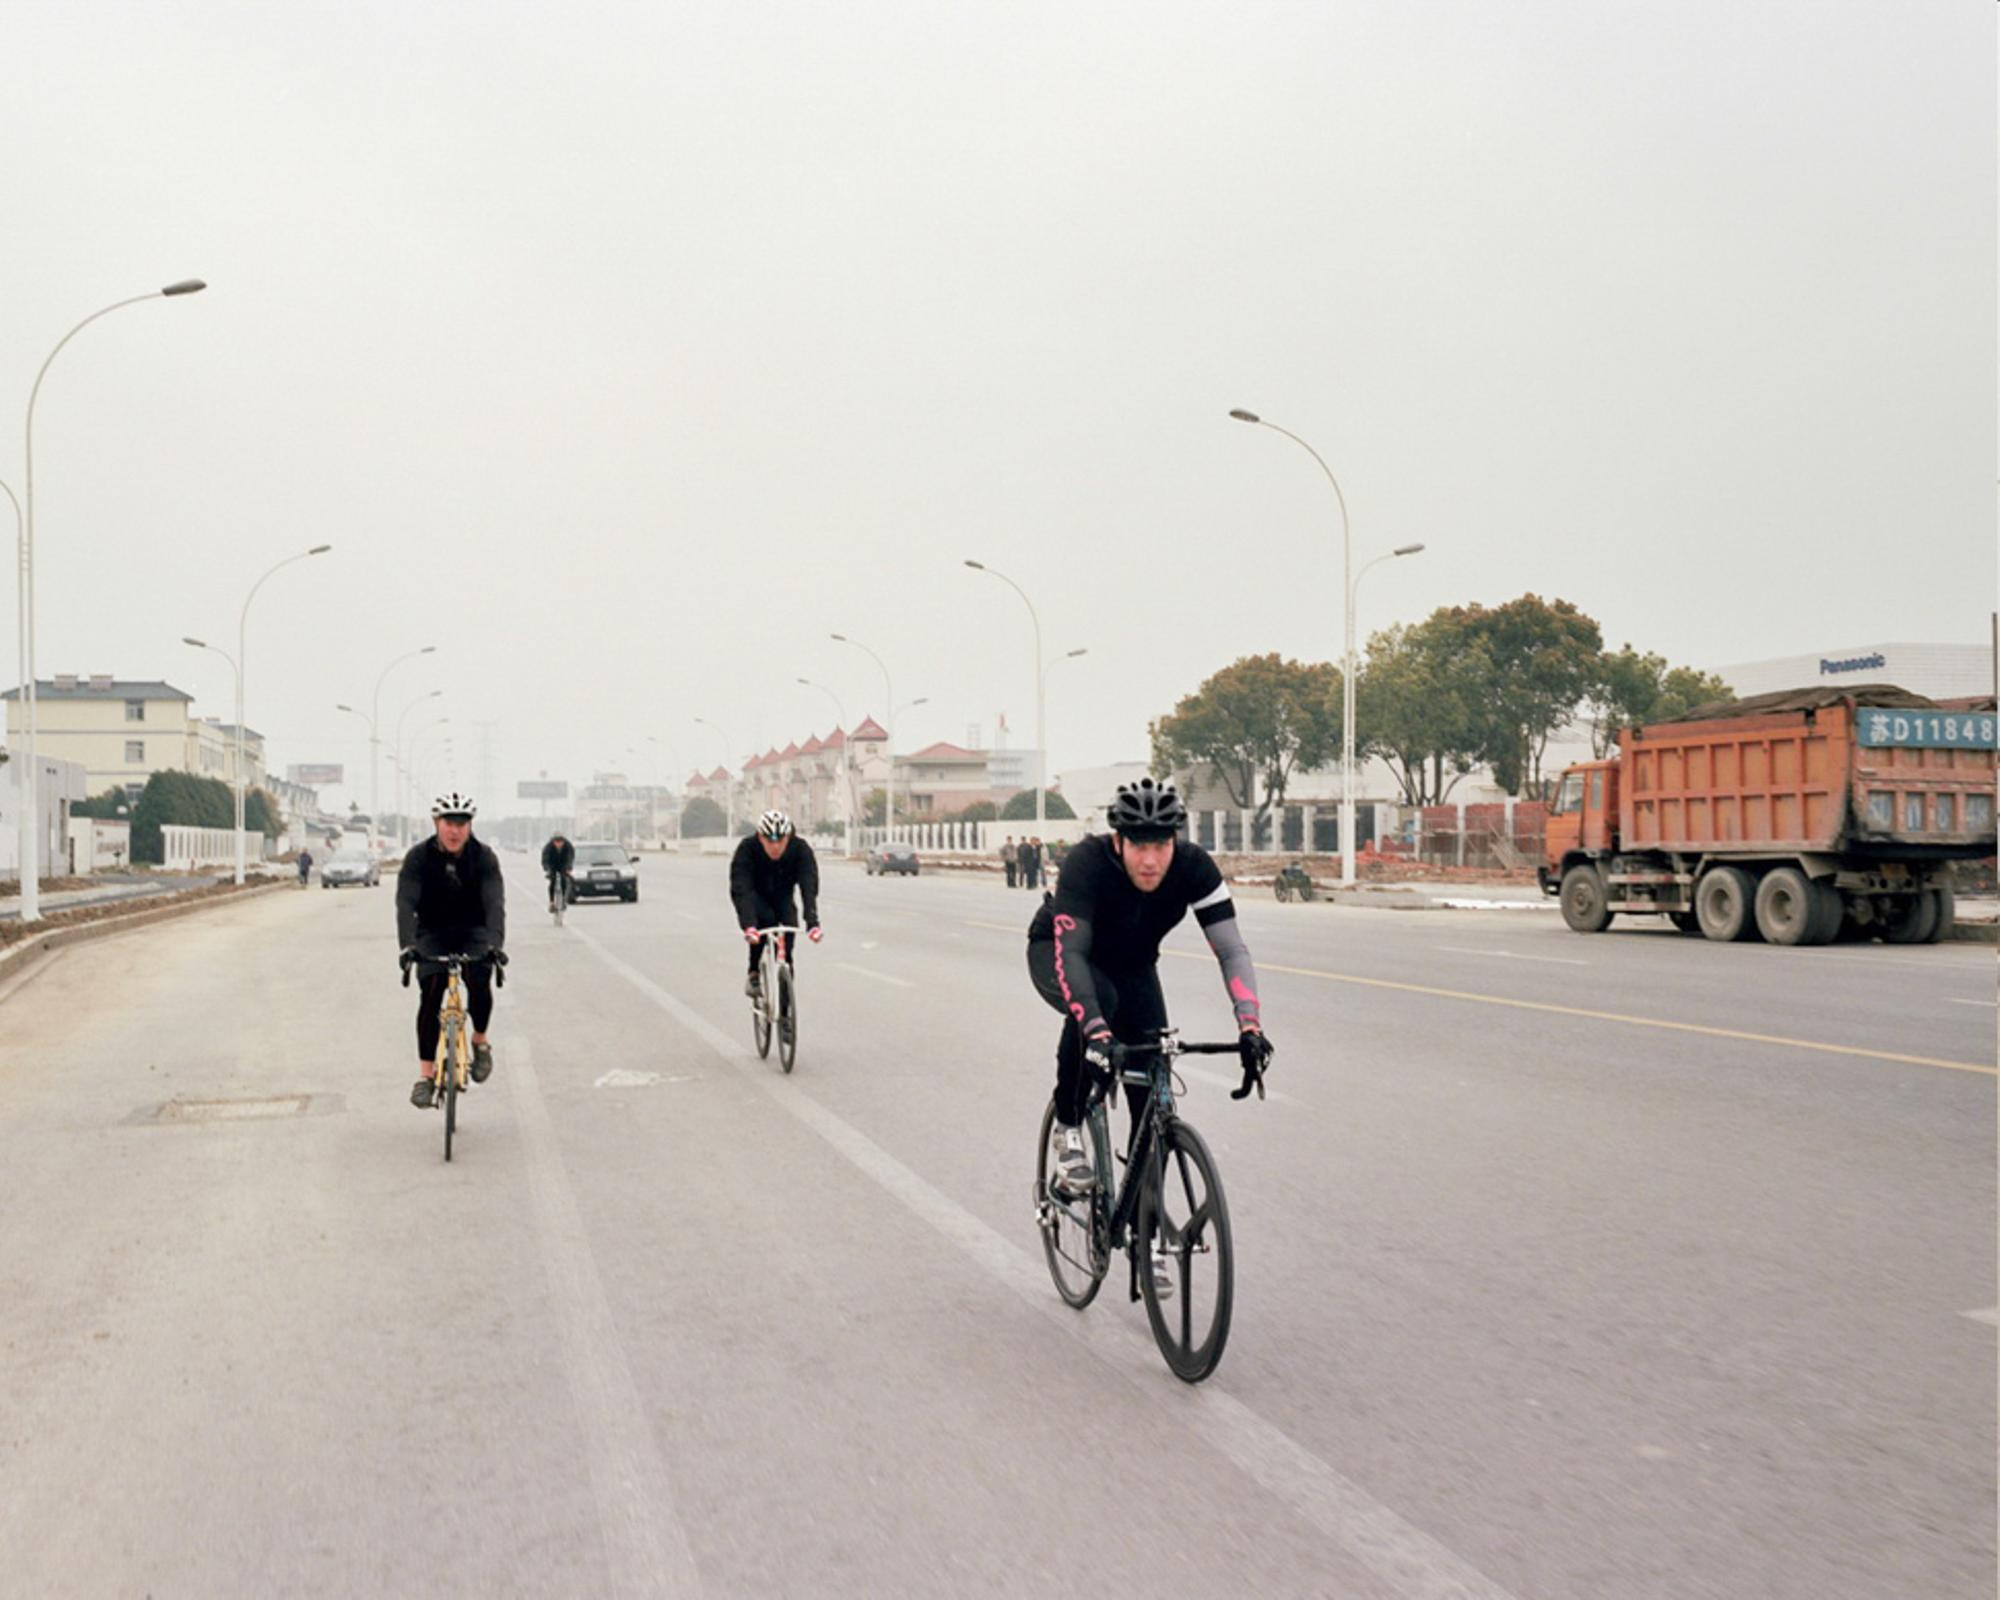 Shot from a Moving Bicycle 01 - The group often broke apart in the heavily polluted areas. You had to concentrate on breathing.